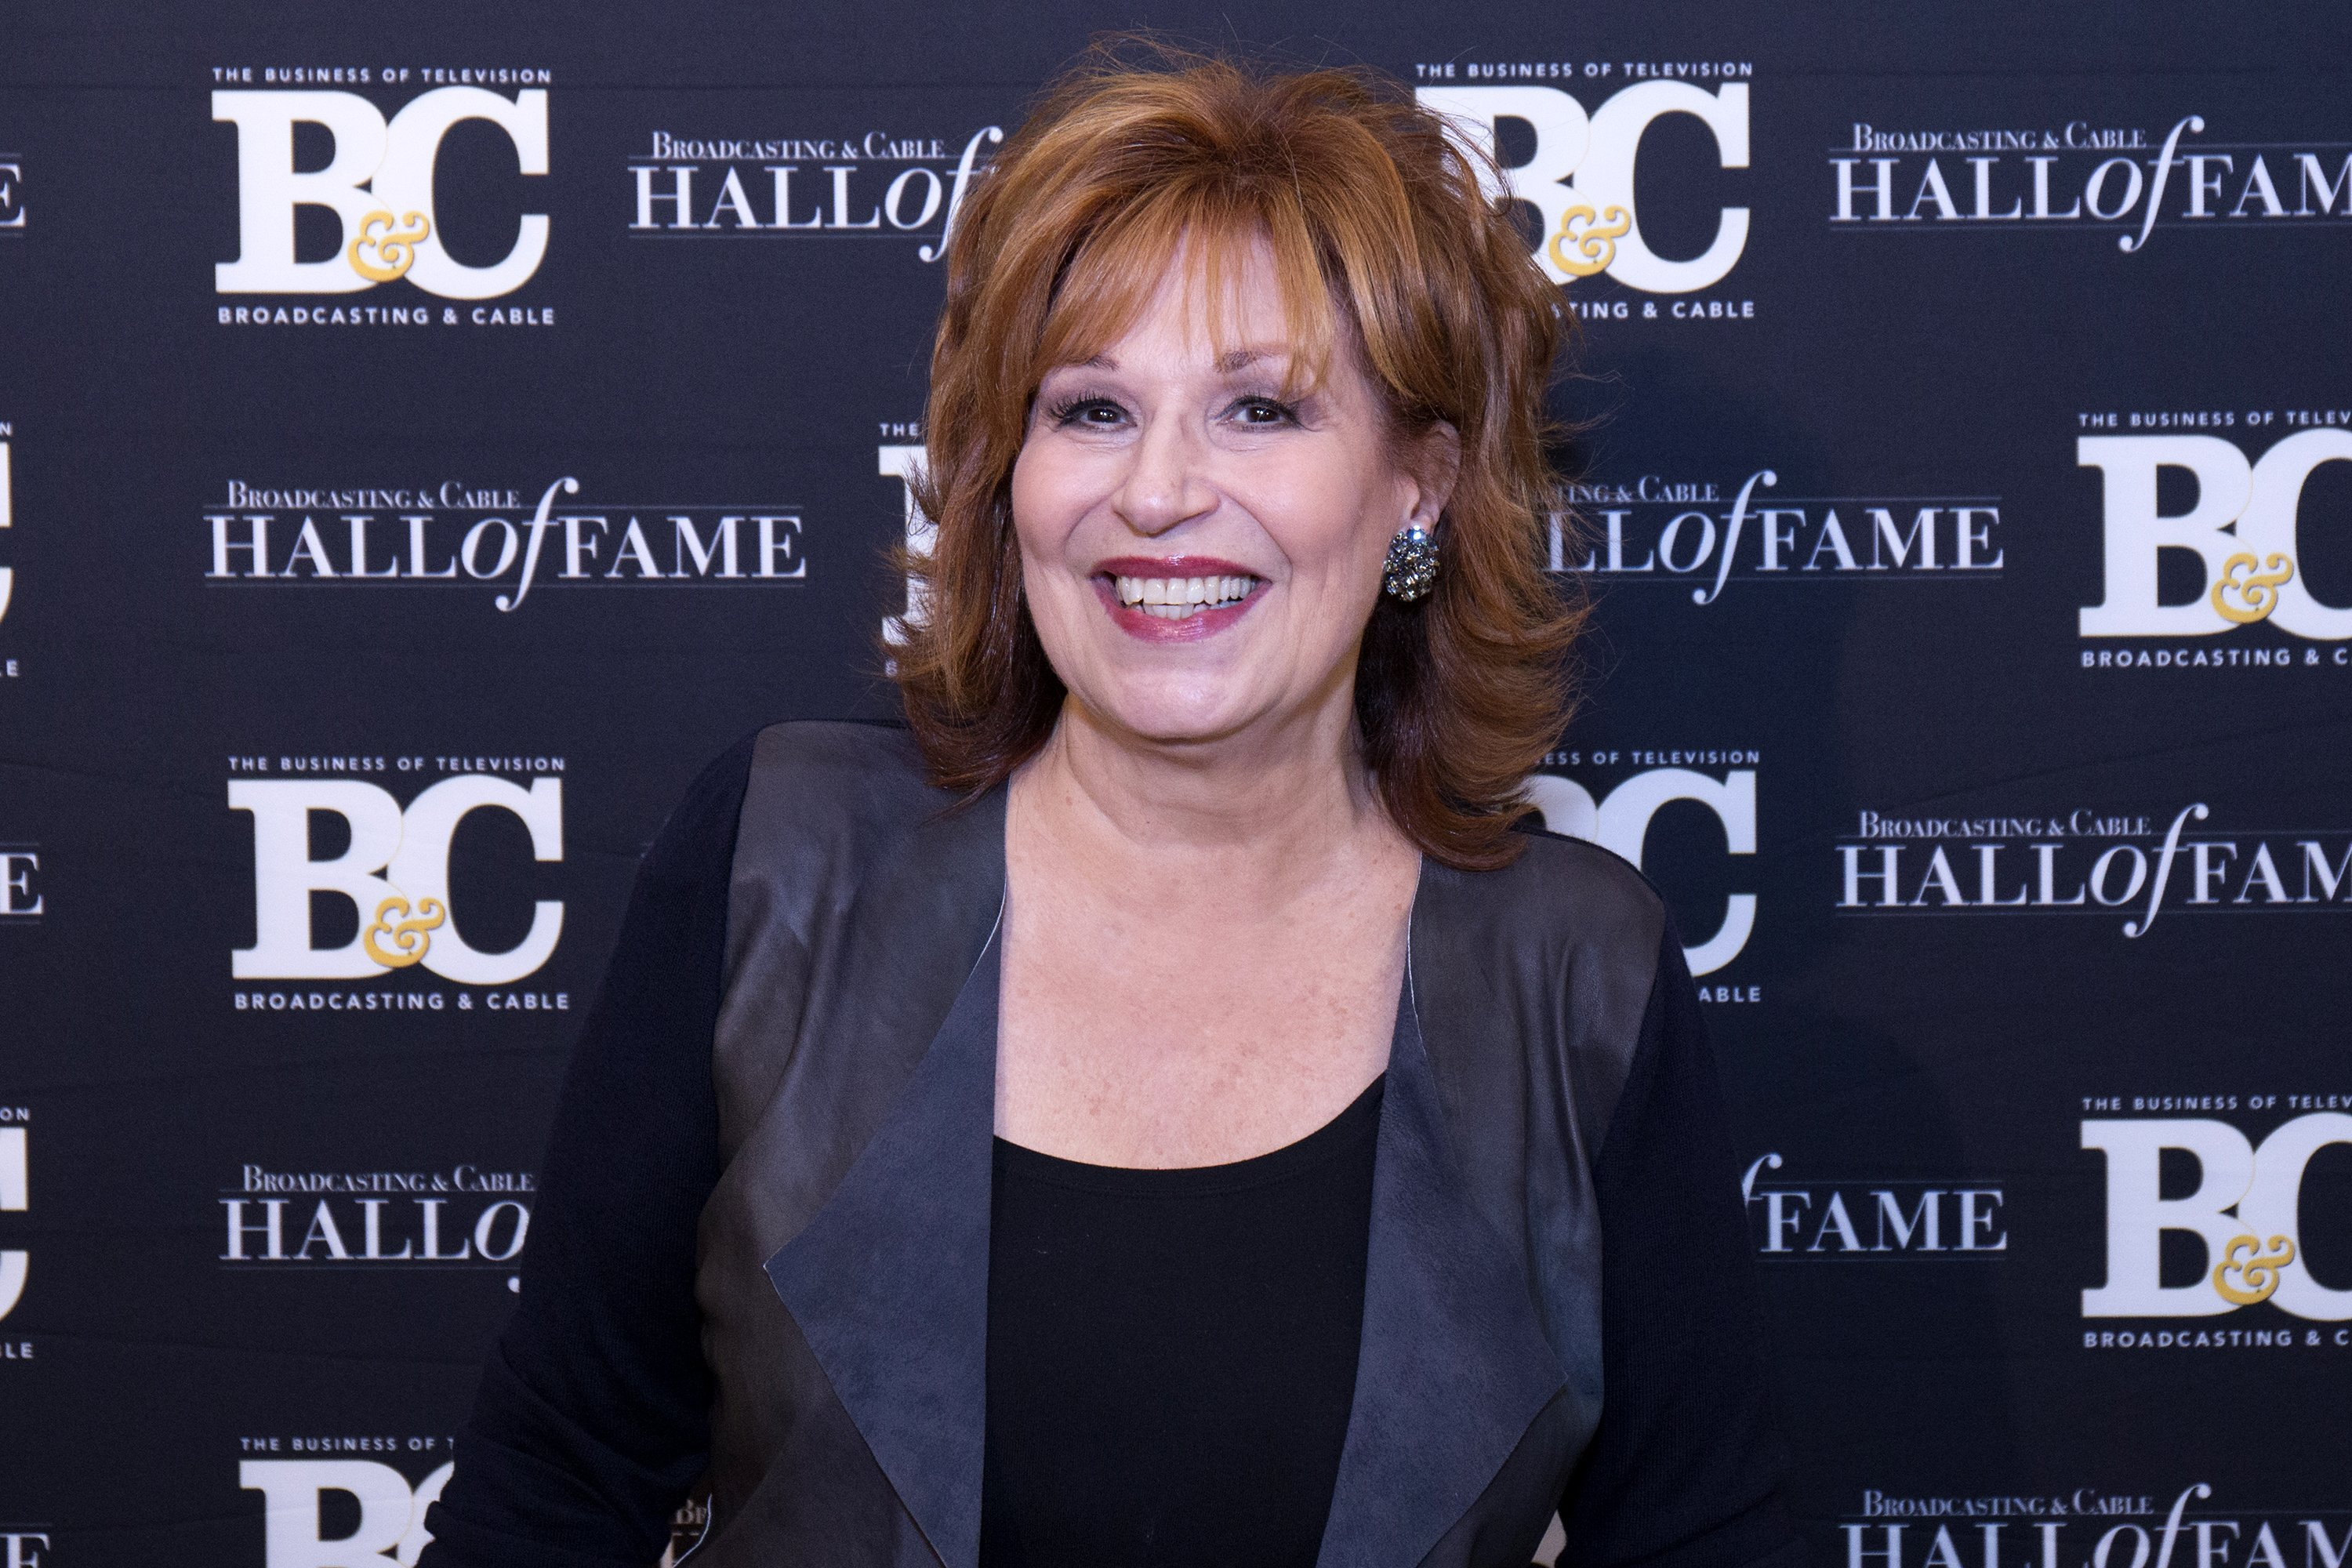 Joy Behar attends the 2017 Broadcasting & Cable Hall Of Fame 27th Anniversary Gala on October 16, 2017. | Photo: GettyImages